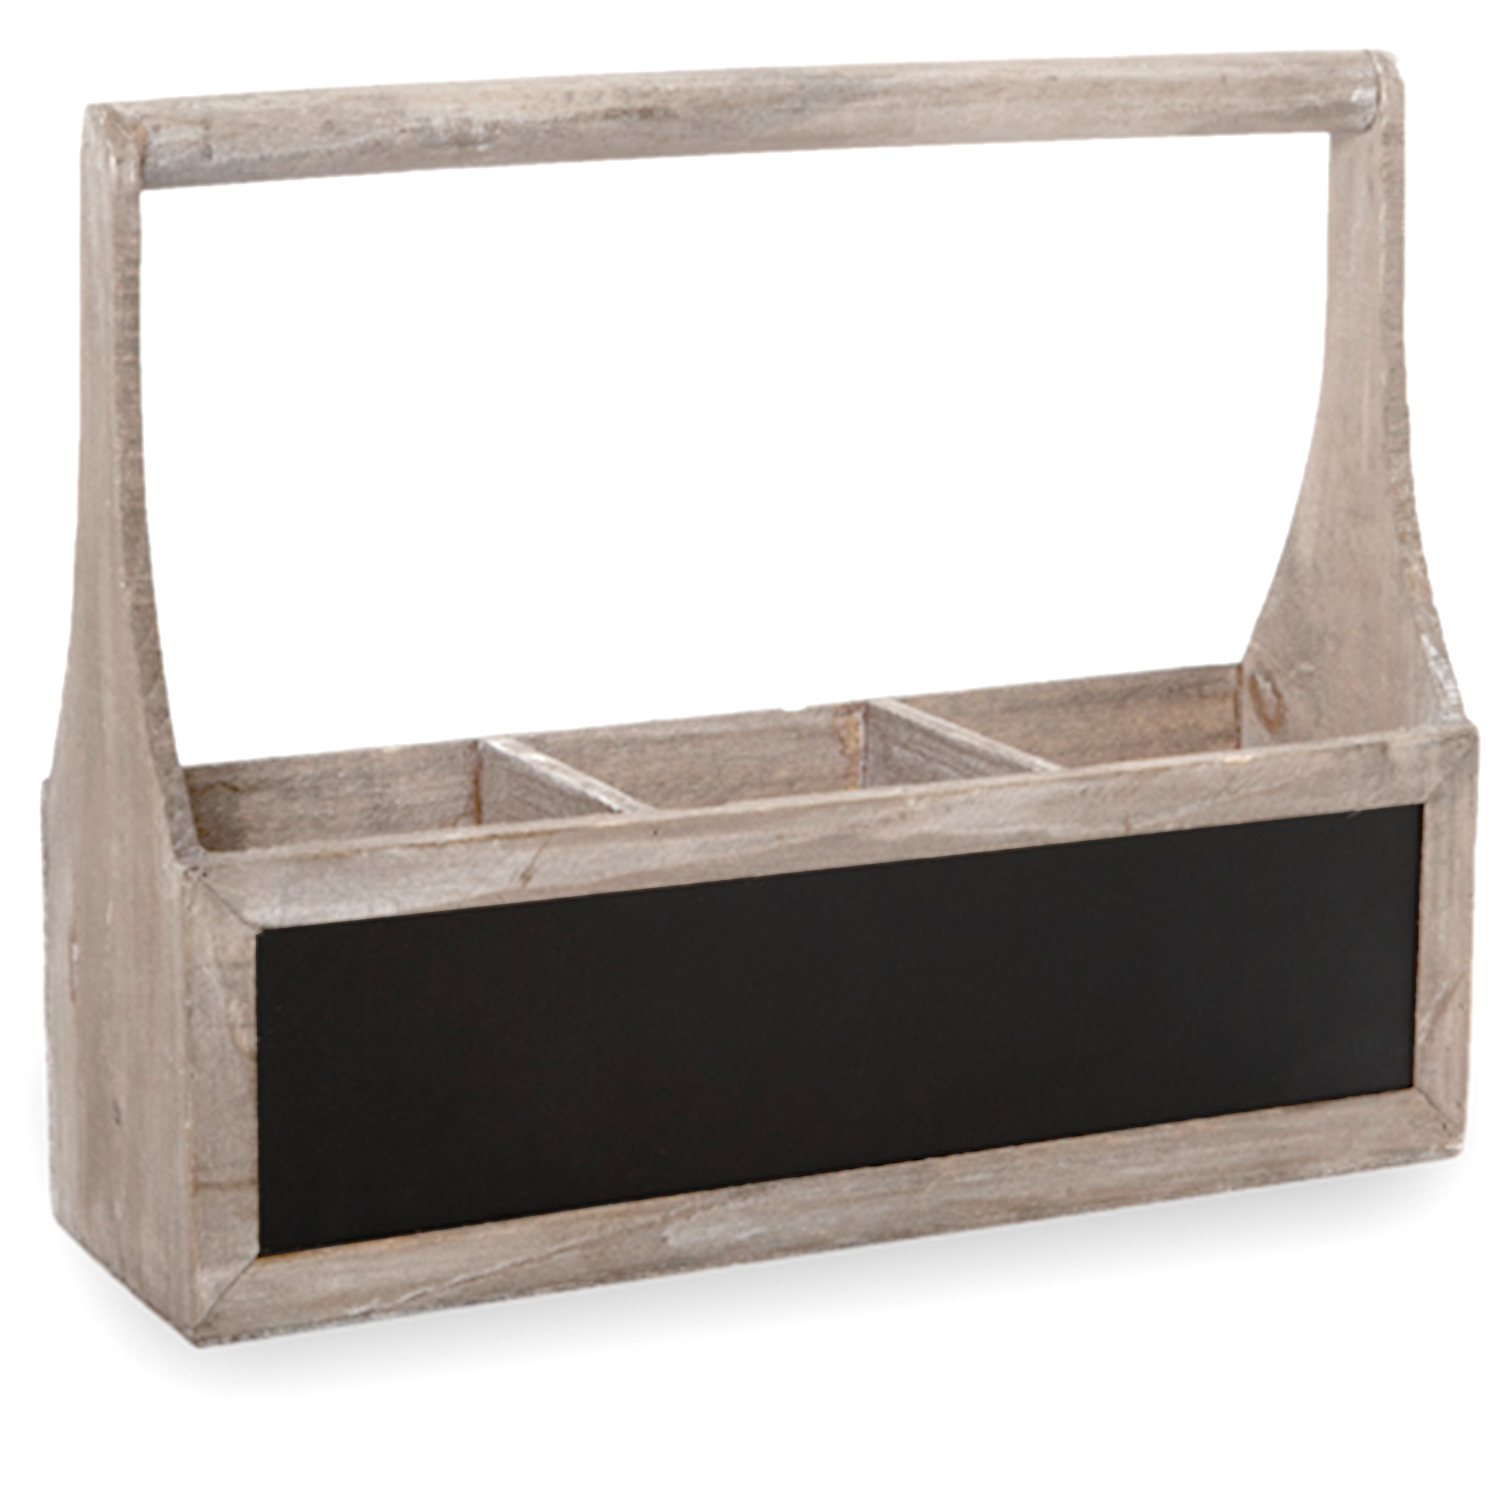 Wooden Rect Three Compartment Planter with Handle 17in